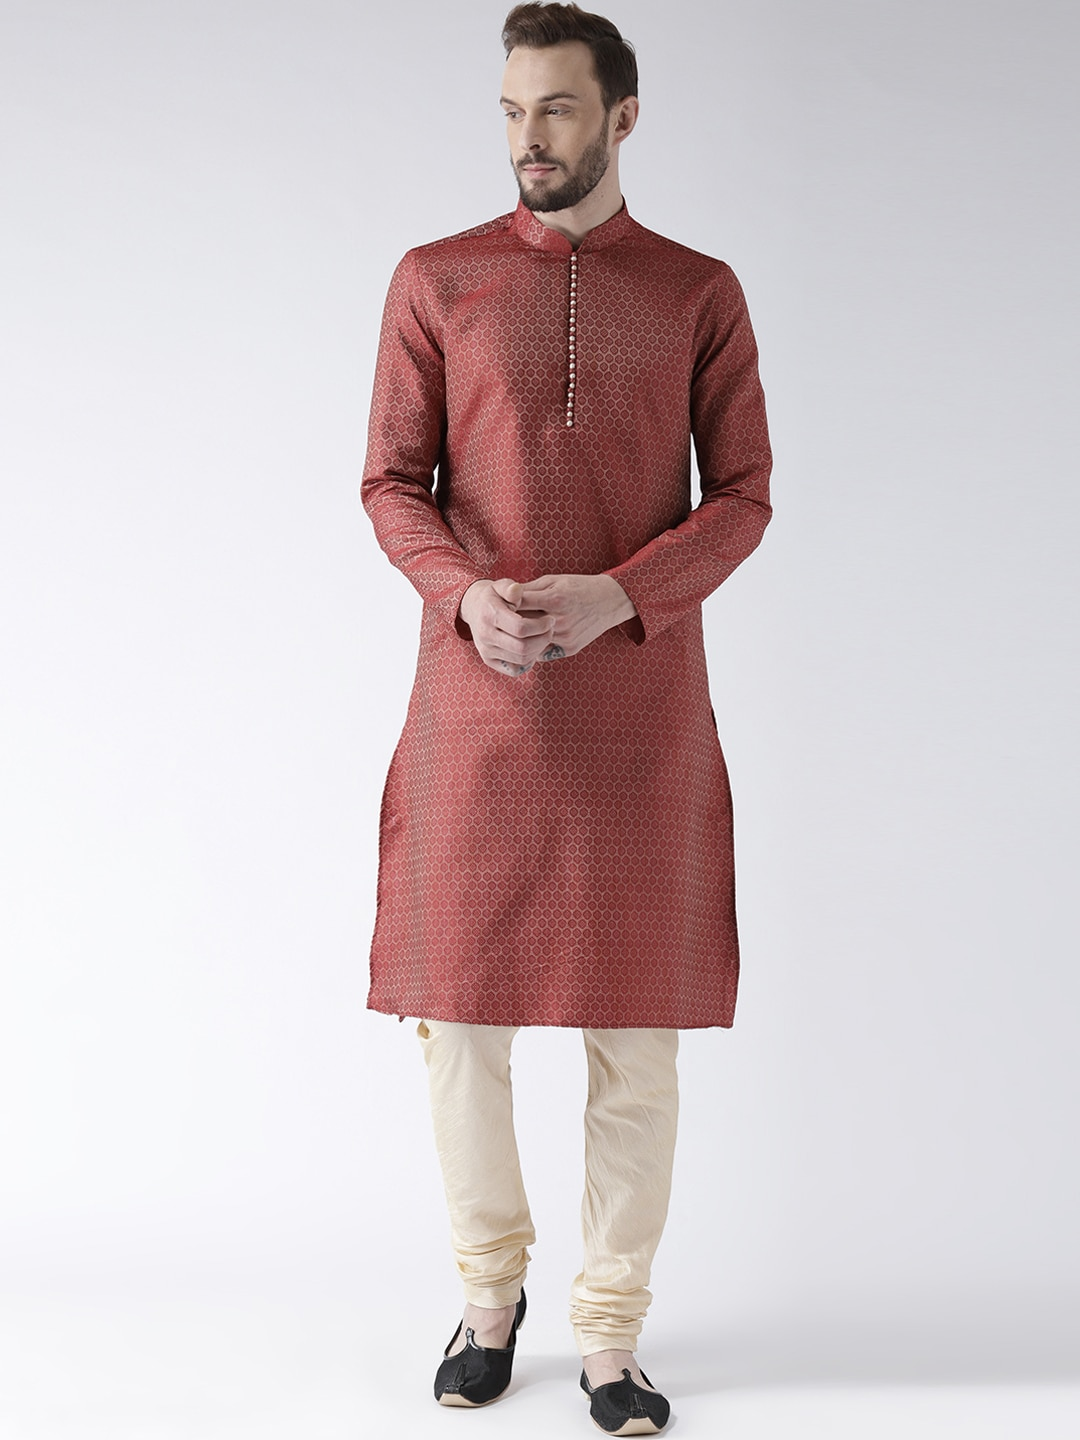 Kurta Indian dresses for men